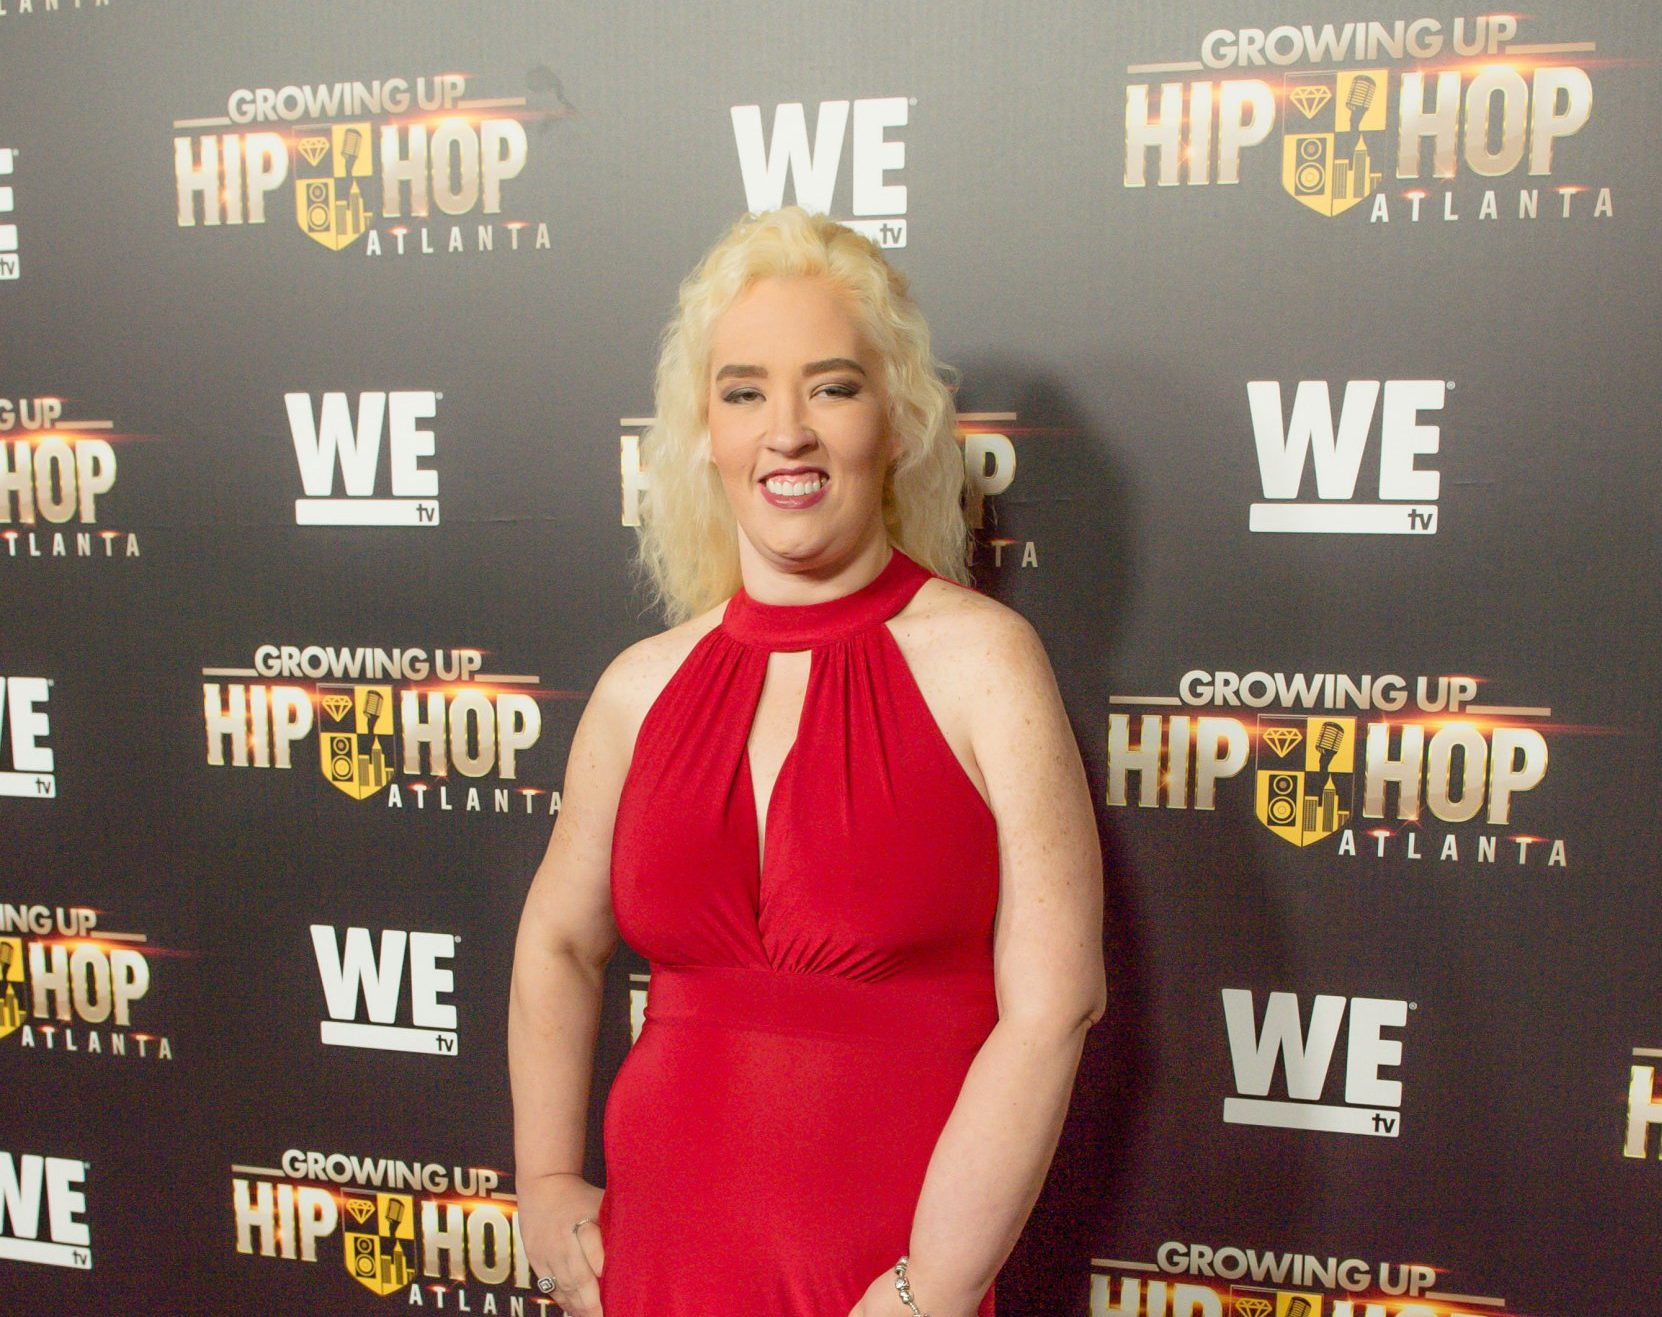 Mama June has got a new man after finally finding happiness after 300lb weight loss